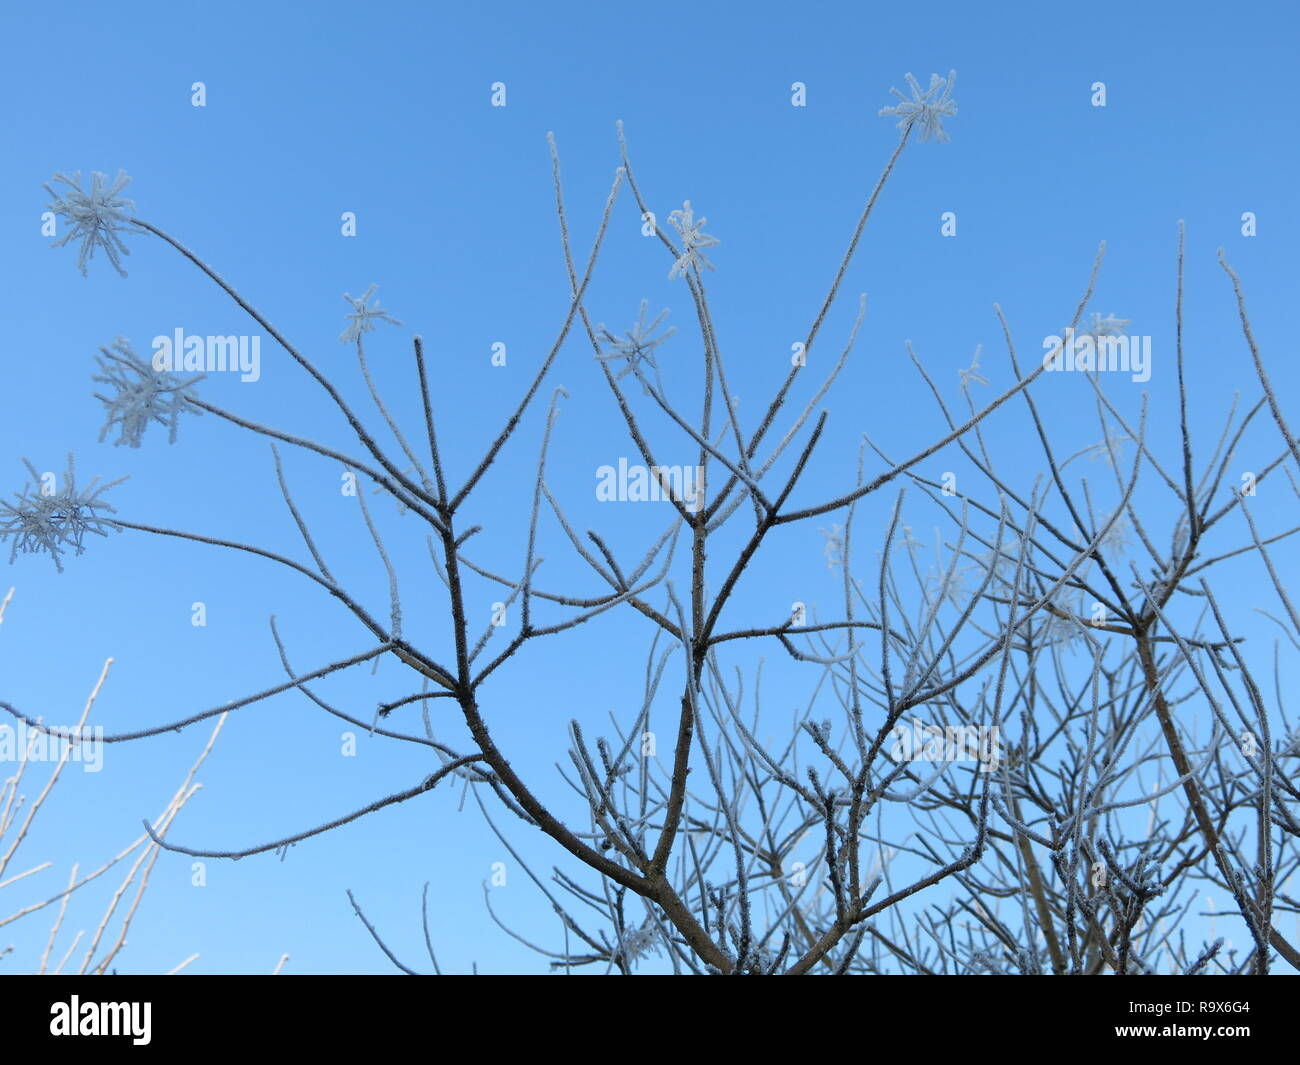 The branches of cotinus coggygria with heavily frosted inflorescences are striking against a blue sky in the wintry sunshine of a Scottish garden. Stock Photo